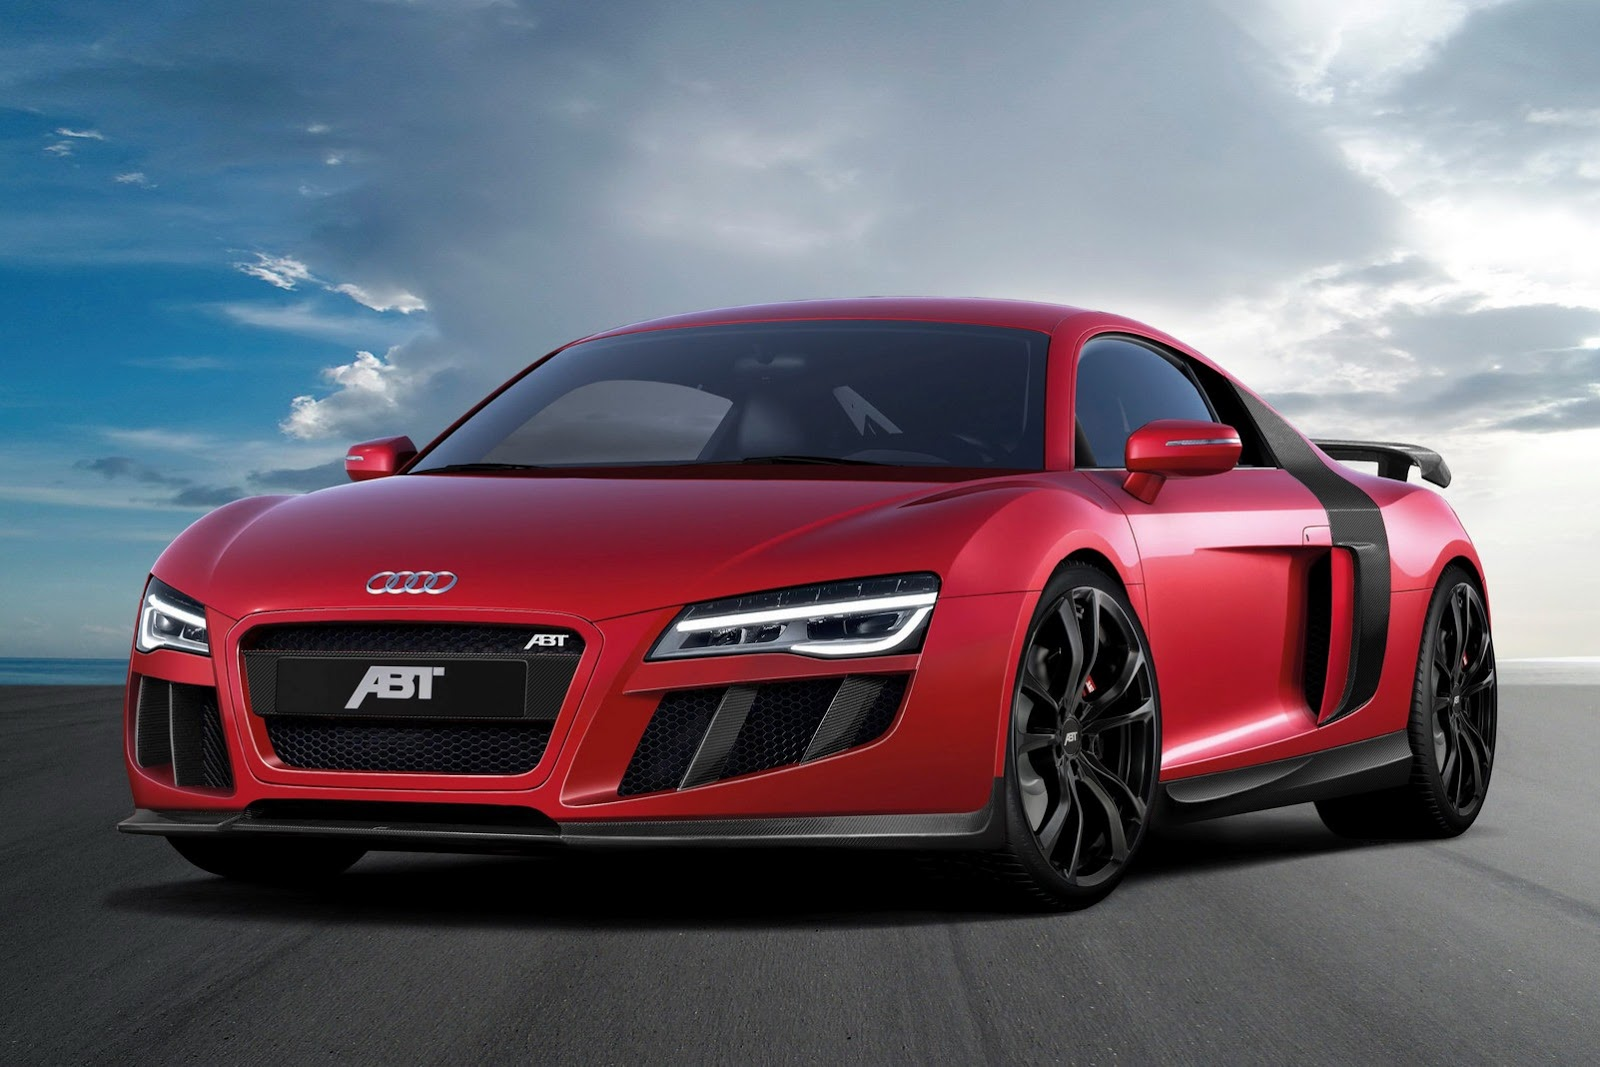 ABT reveals new tuning program for the Audi R8 V10